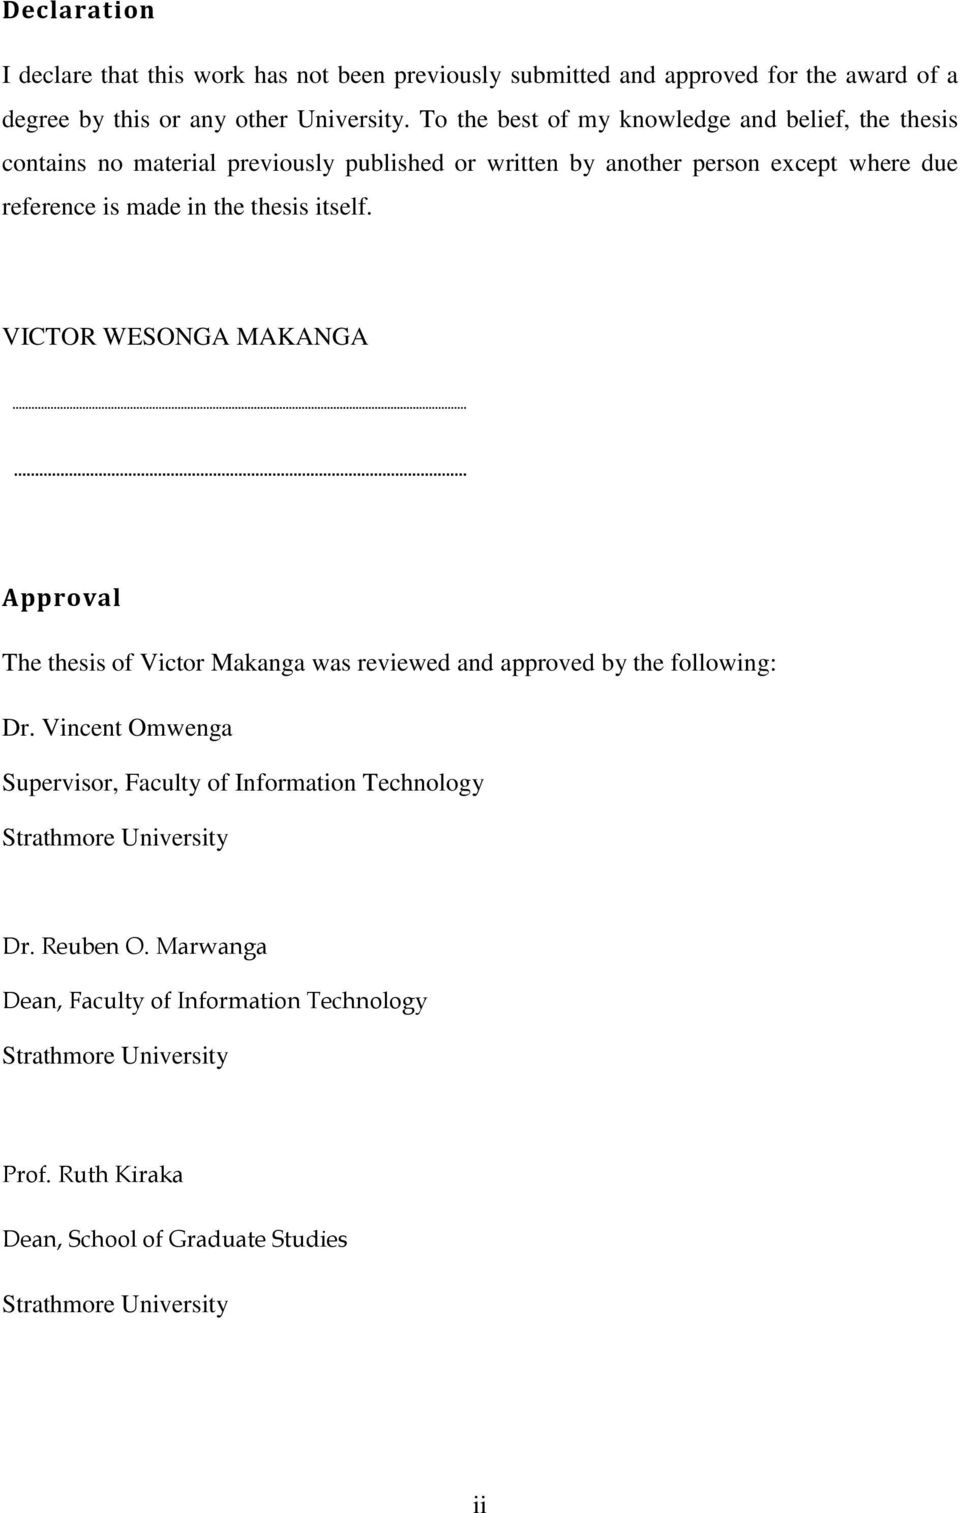 thesis itself. VICTOR WESONGA MAKANGA Approval The thesis of Victor Makanga was reviewed and approved by the following: Dr.